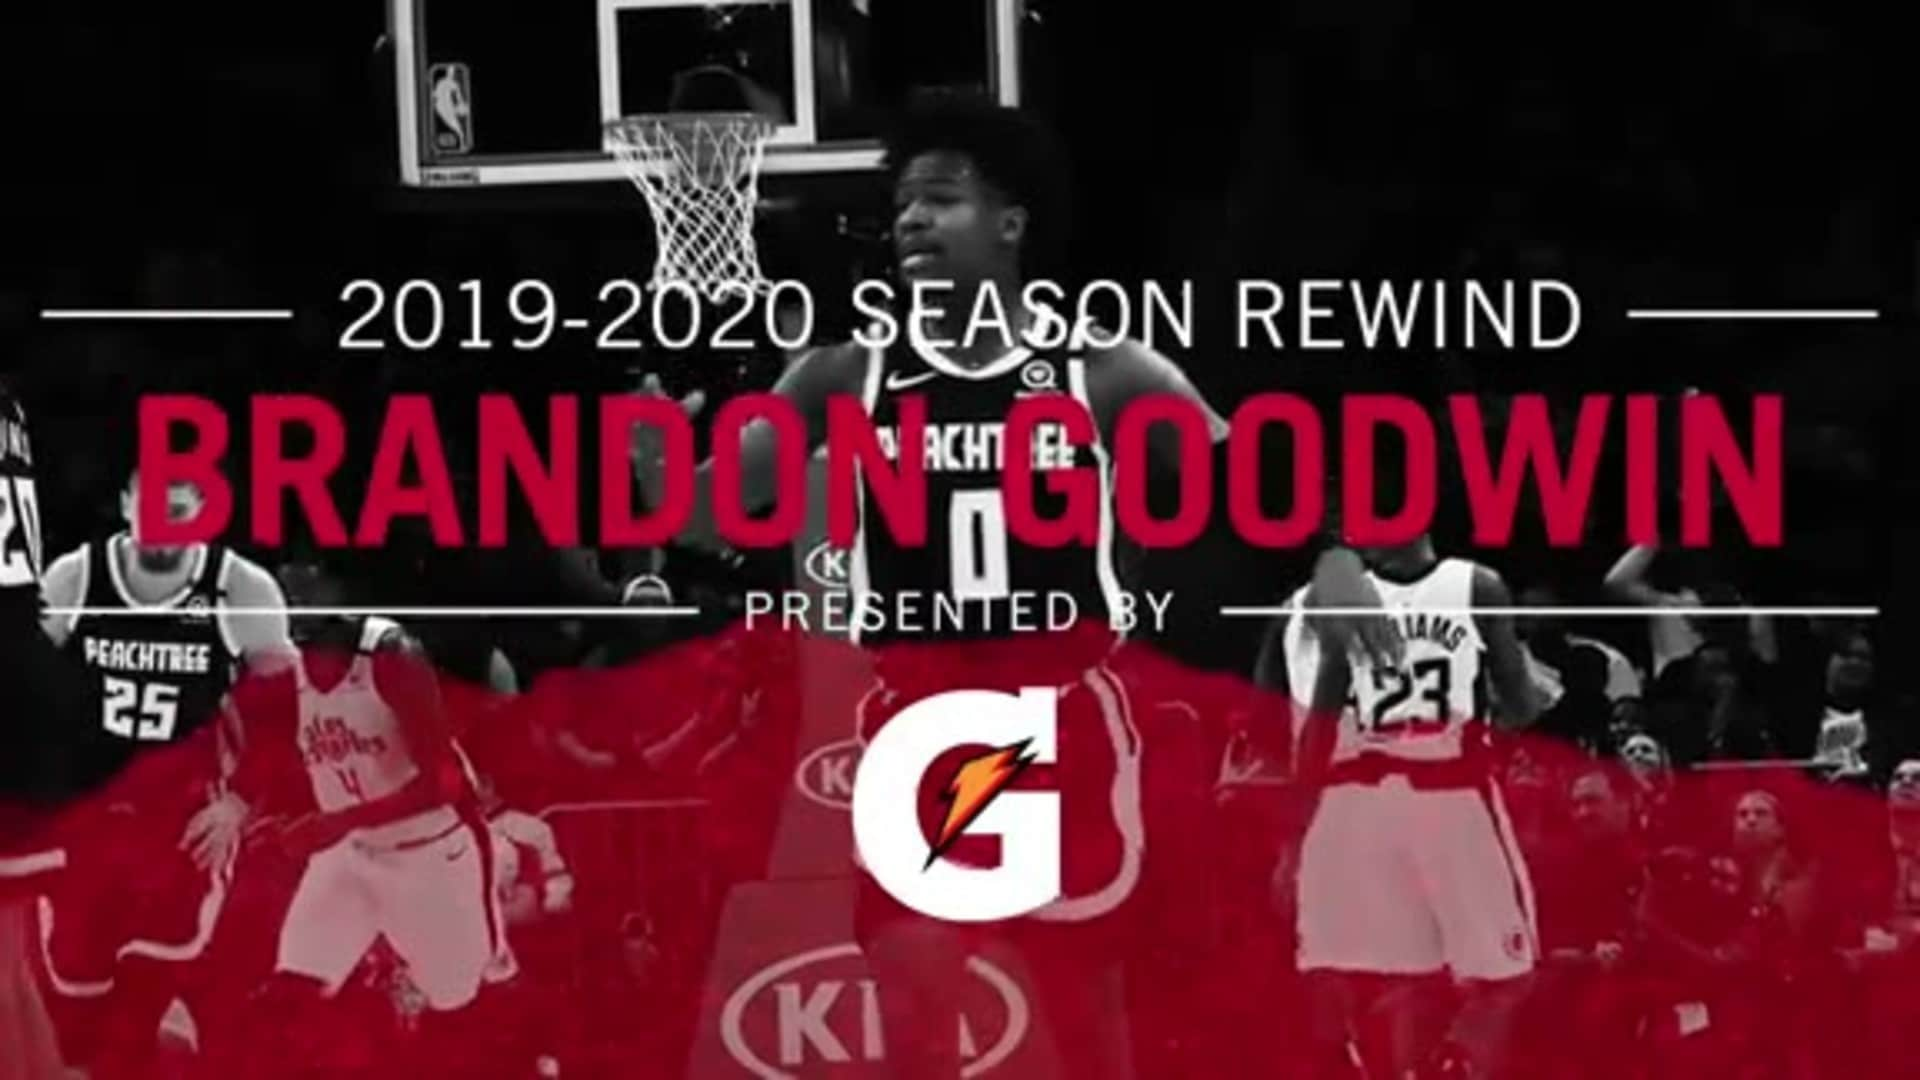 2019-2020 Season Rewind Presented by Gatorade: Brandon Goodwin's Top Plays